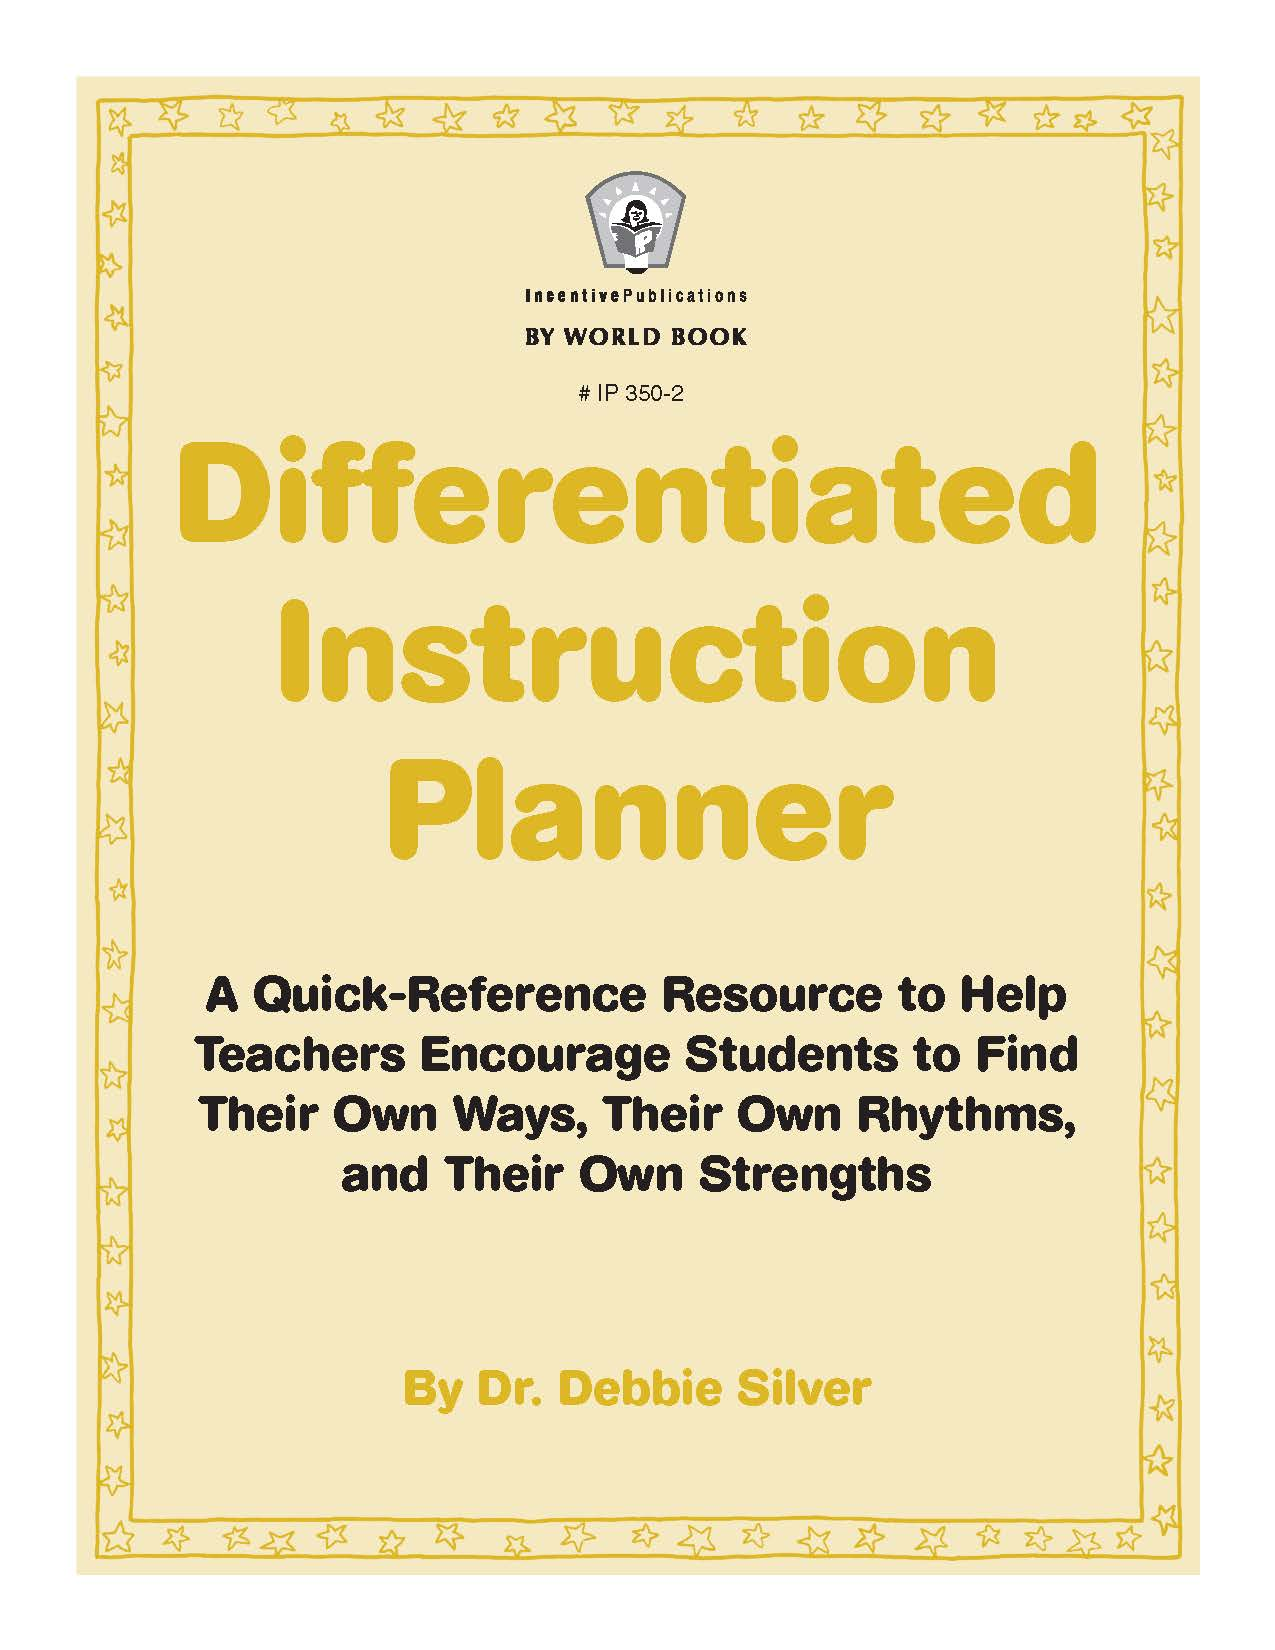 Differentiated Instruction Planner cover